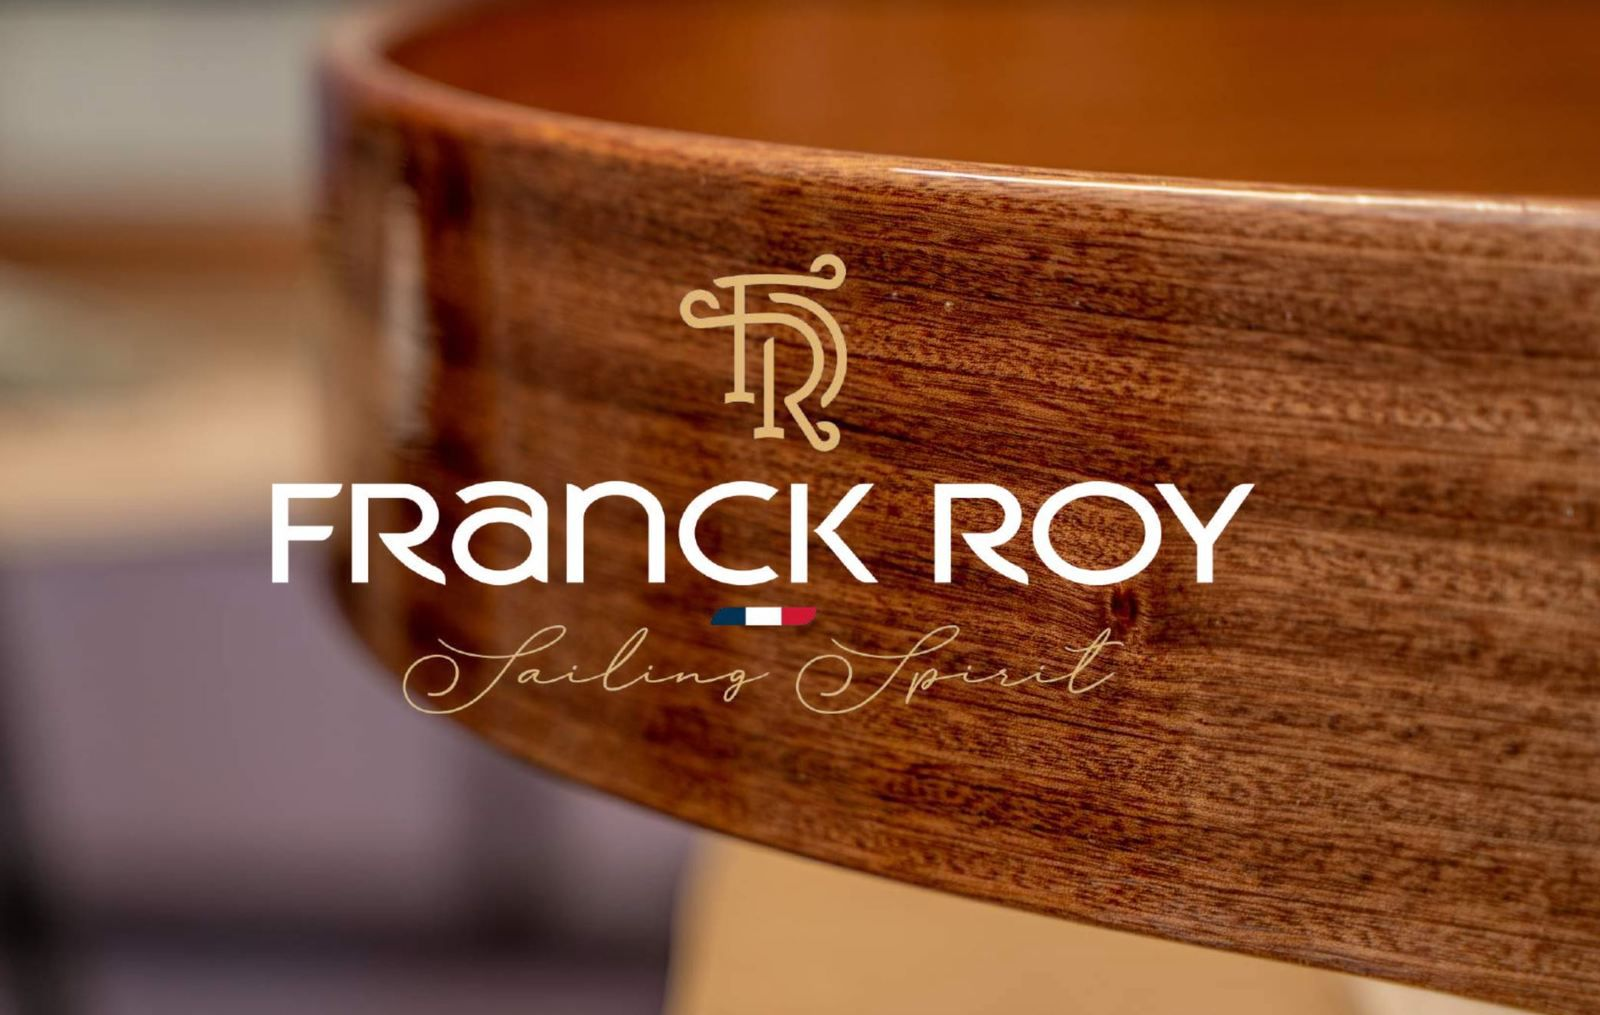 Franck Roy yachts seduce the Scandinavian countries